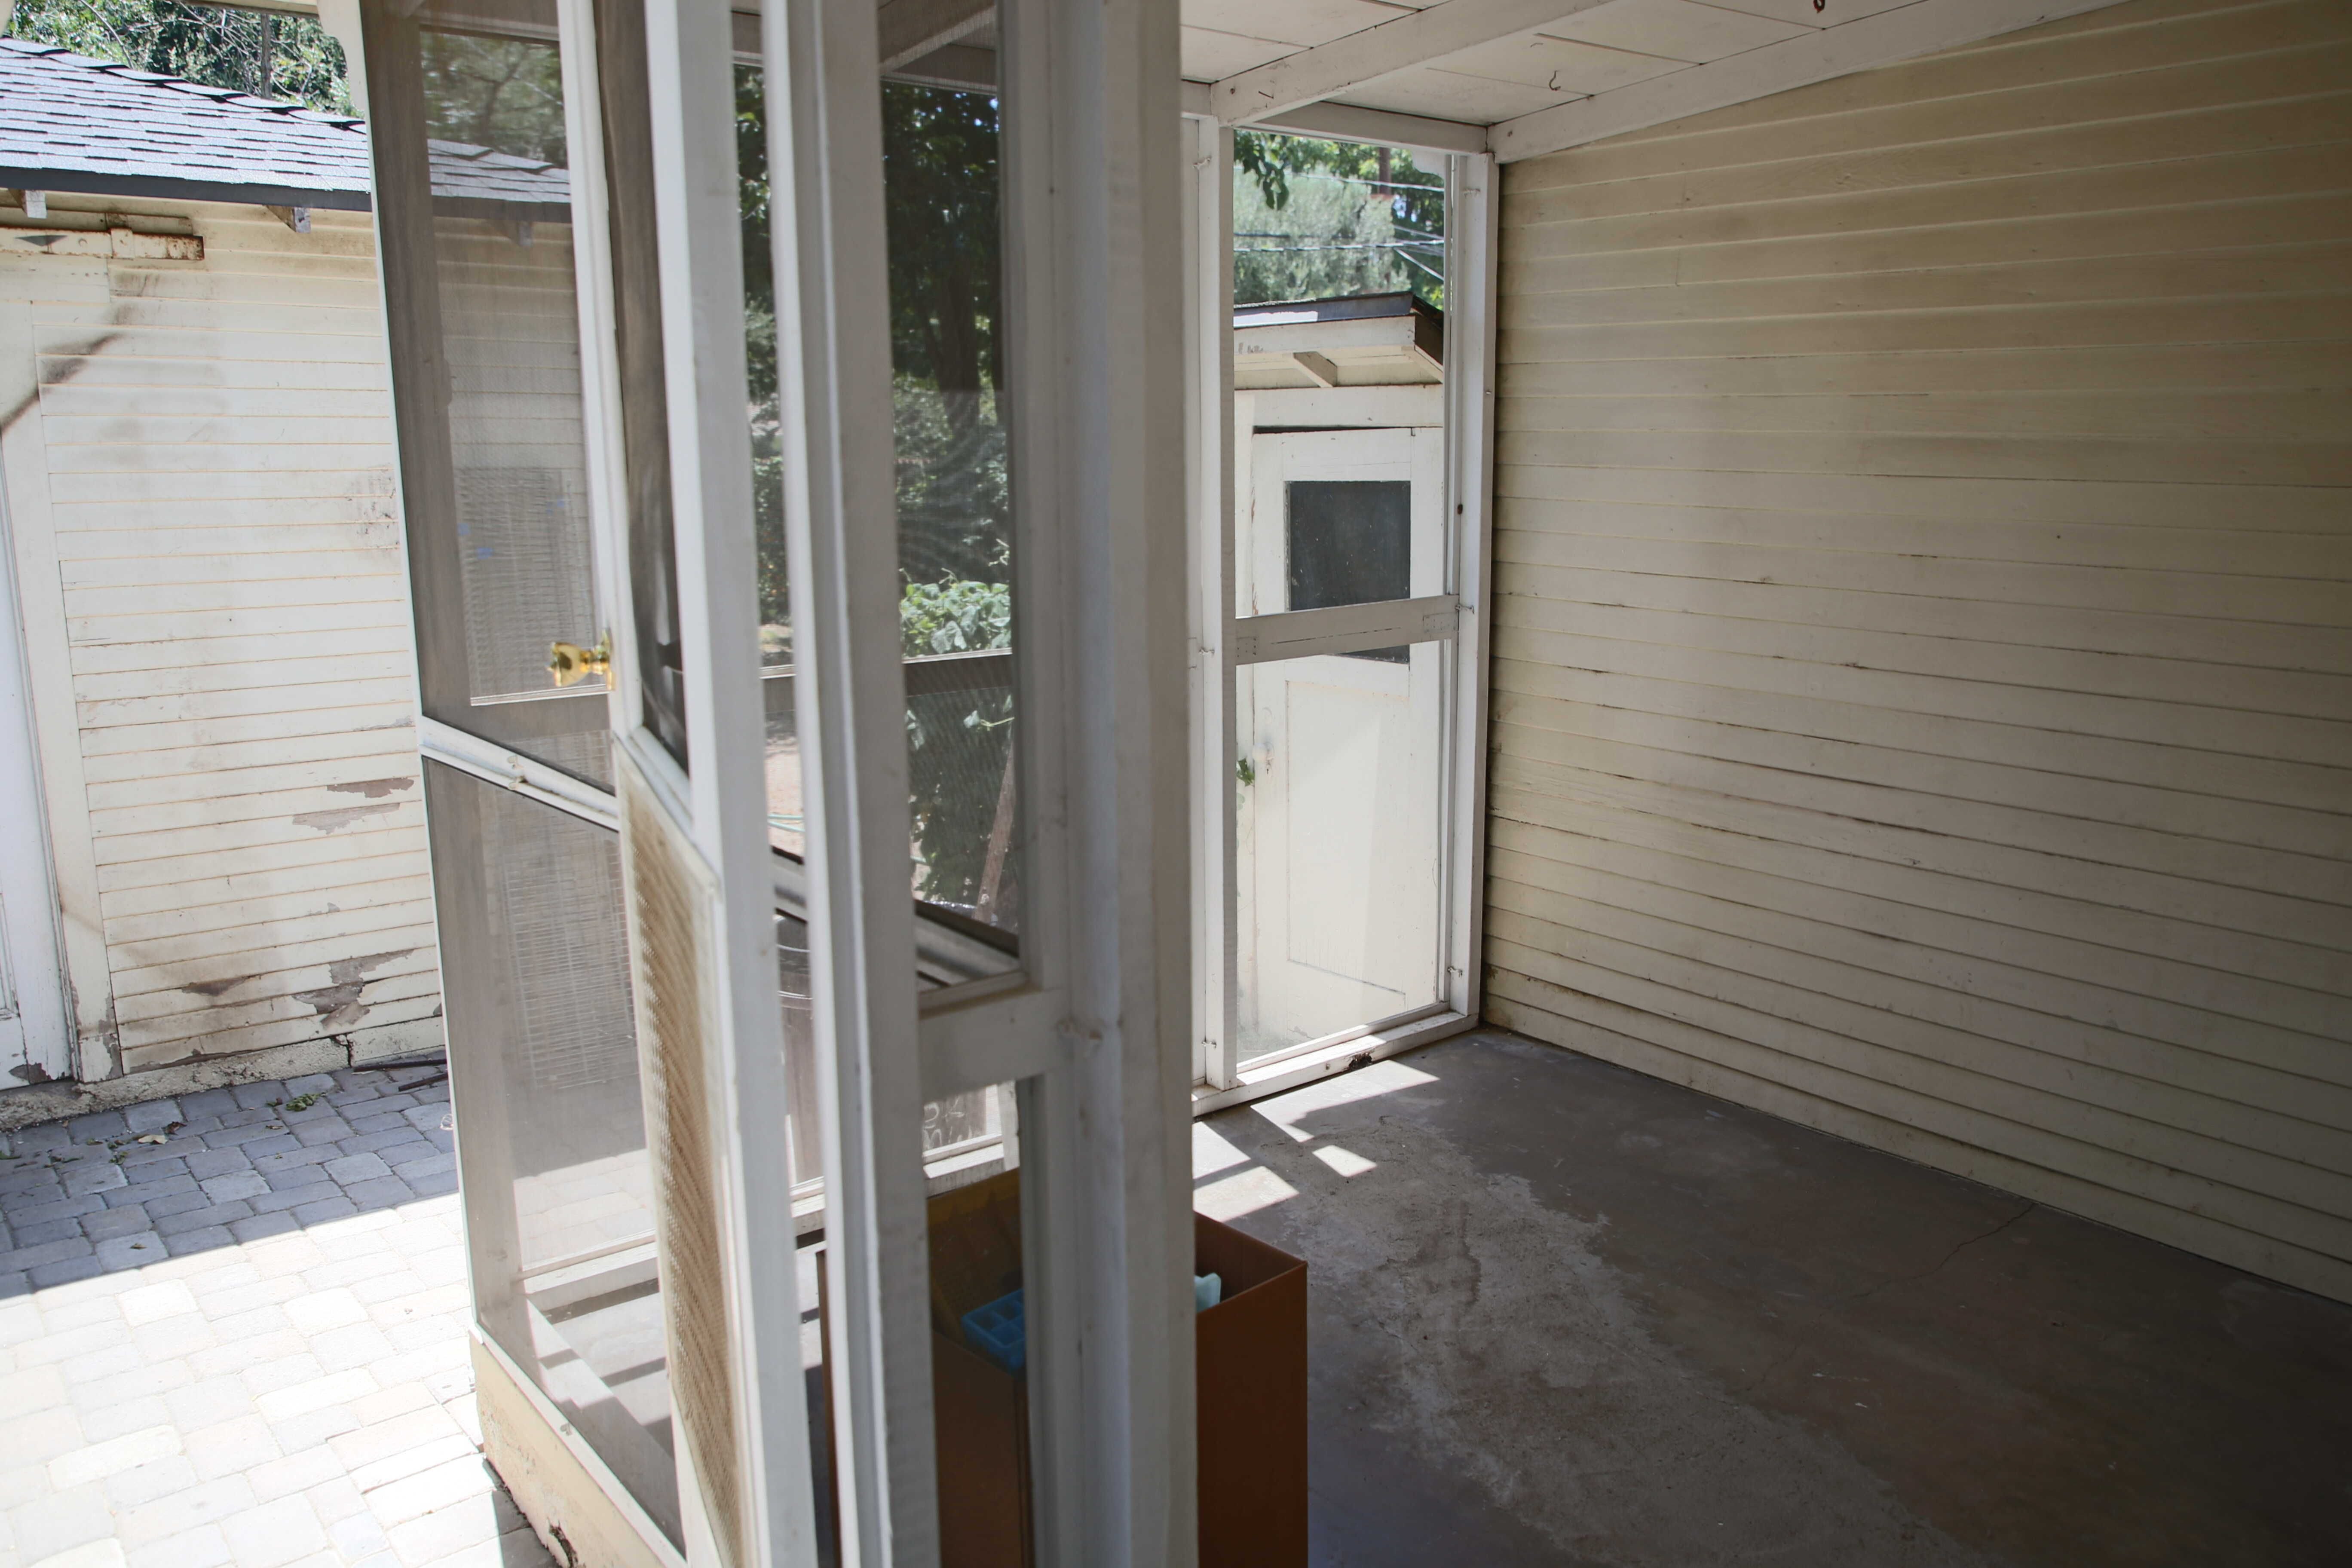 Screened-in porch off the back of the house. Was used as a catio.